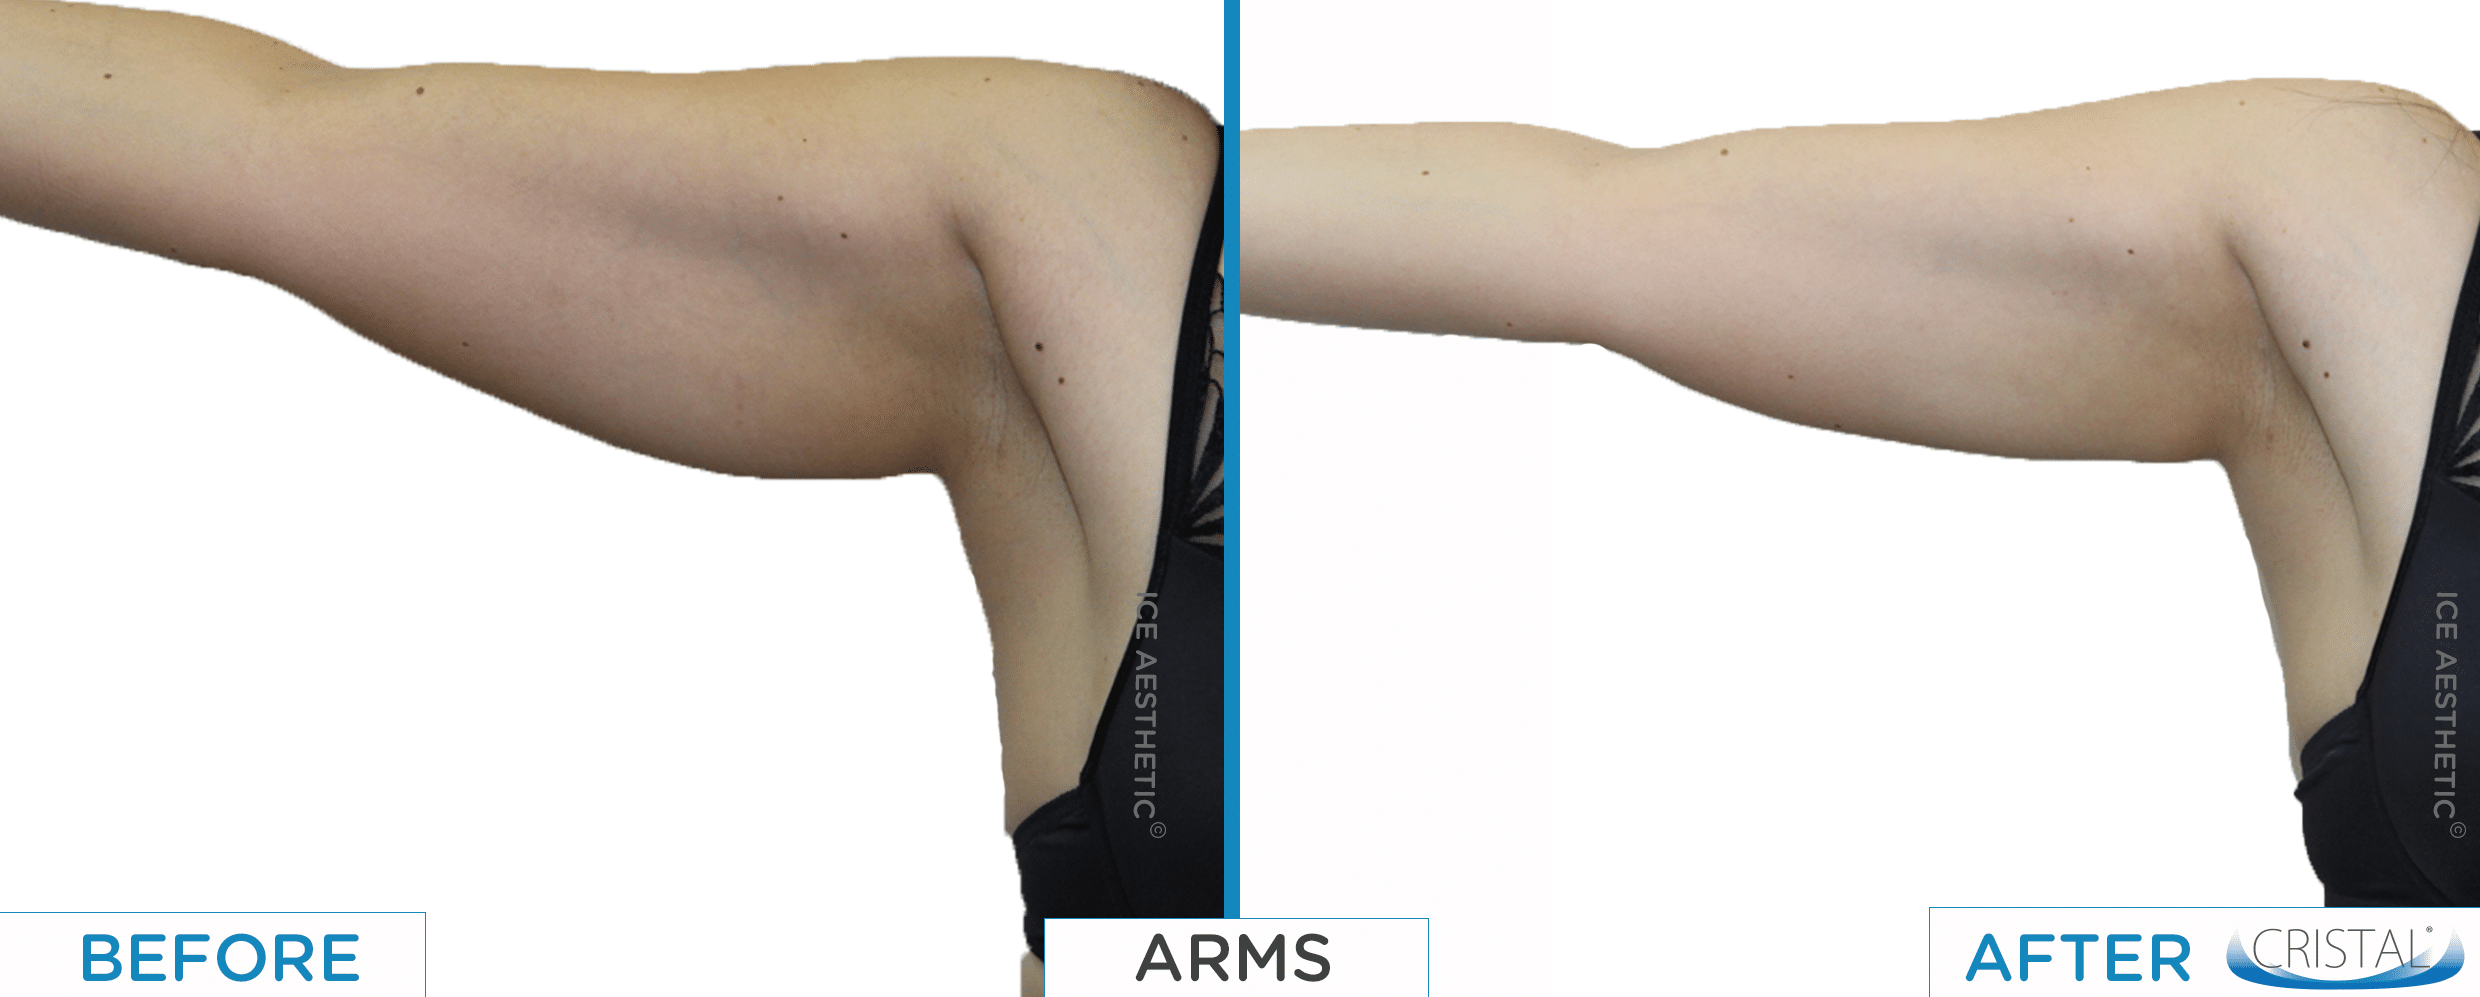 CRISTAL before and after arm